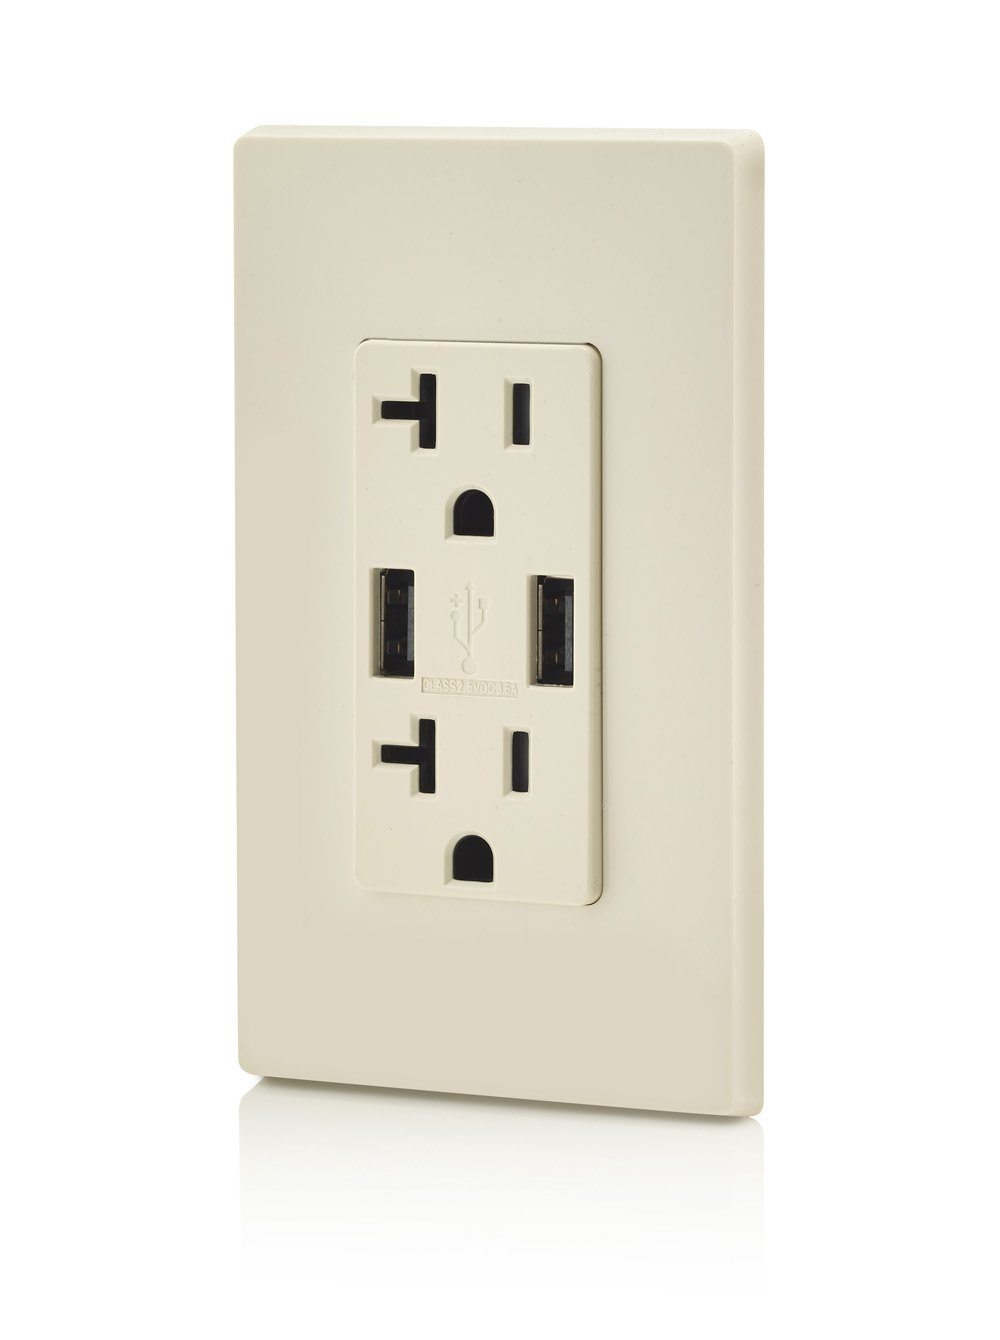 Dorable 15 Amp Receptacle On 20 Amp Circuit Picture Collection ...